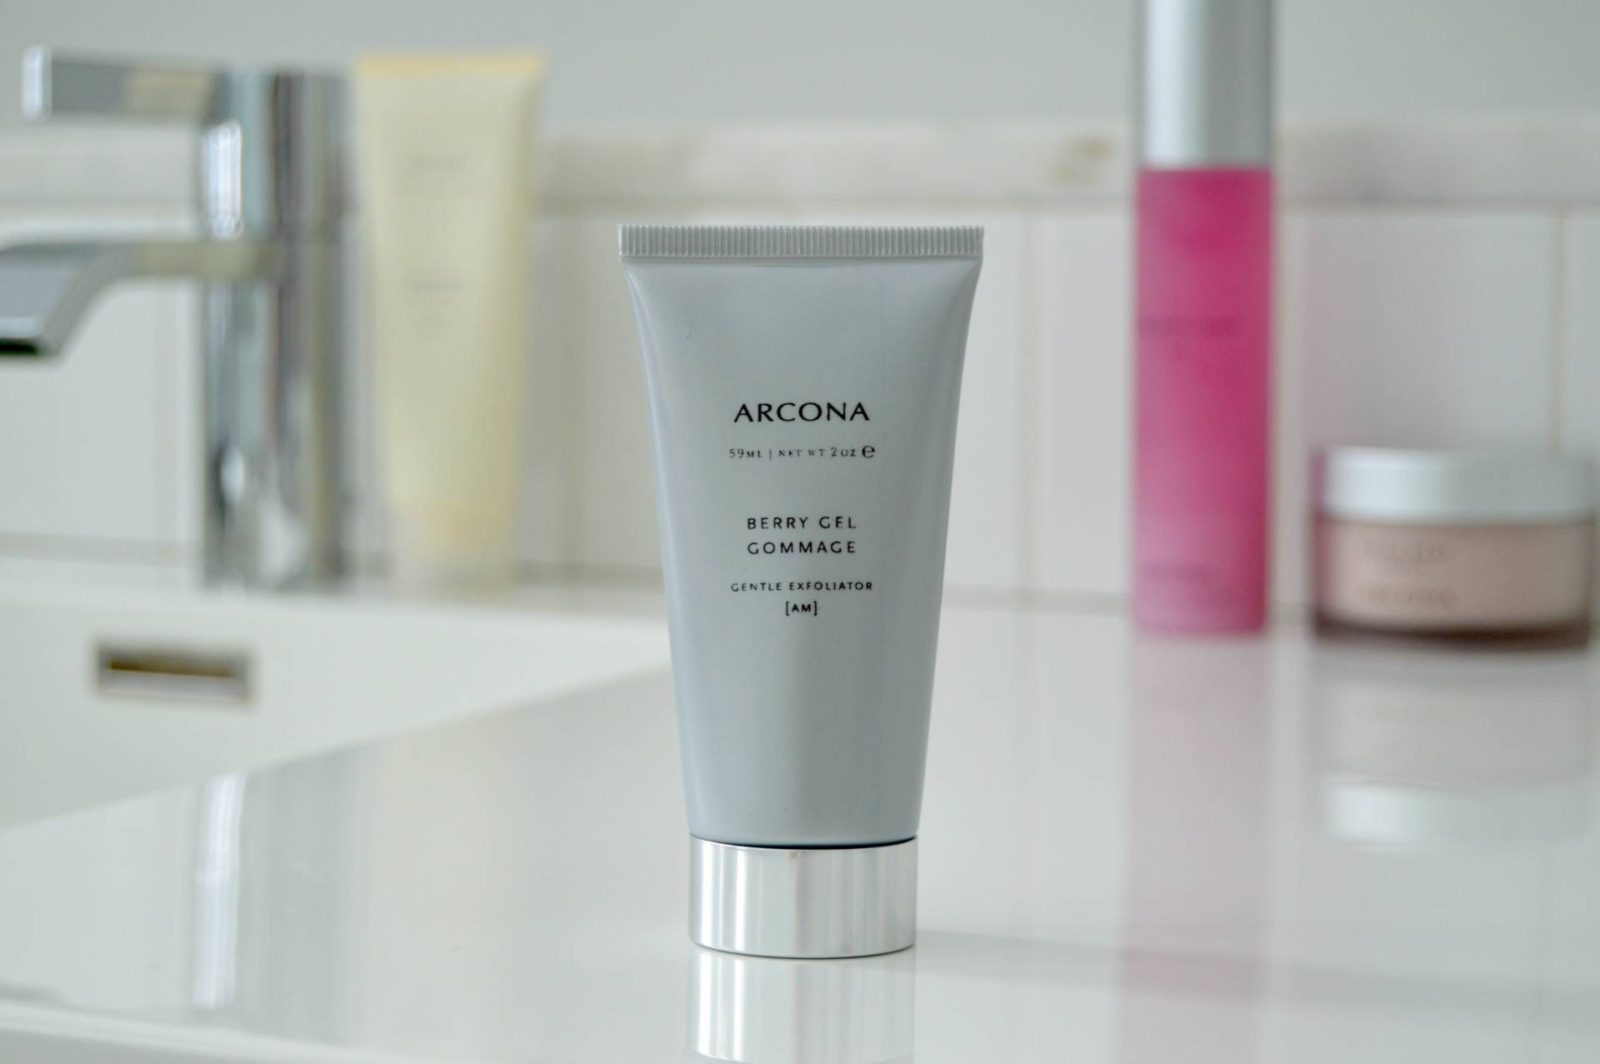 ARCONA BERRY GEL GOMMAGE – THE SUPER GENTLE ENZYME EXFOLIANT HAS ARRIVED! |AD